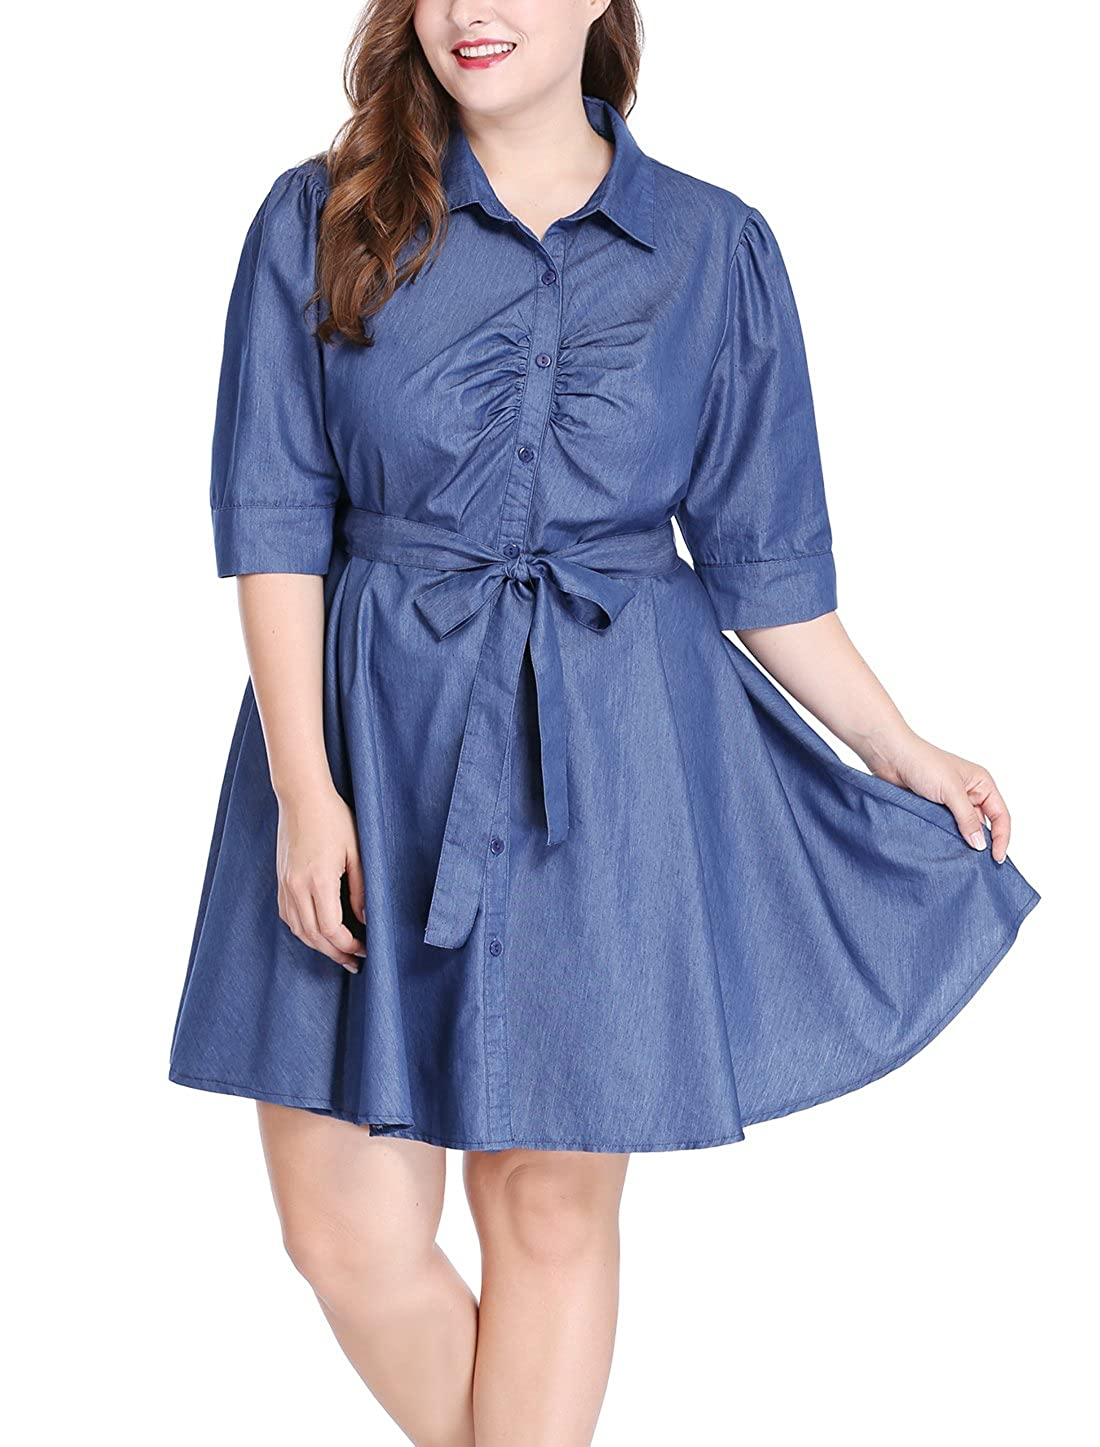 uxcell Women's Plus Size 1/2 Sleeves Belted Above Knee Denim Shirt Dress 3X Blue a16120100ux0618